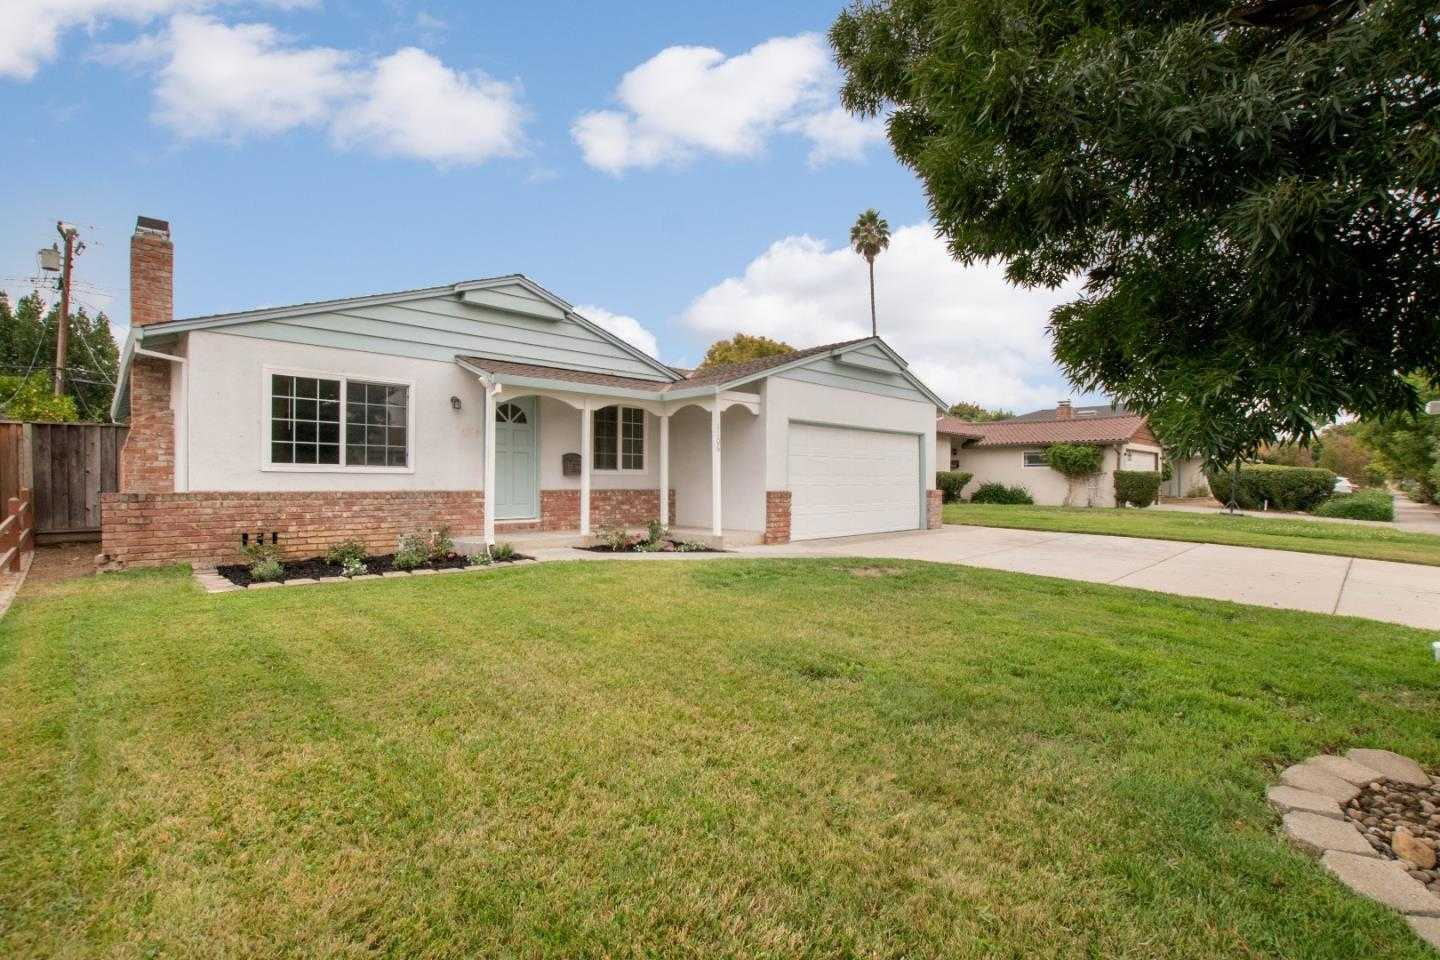 $1,847,000 - 3Br/2Ba -  for Sale in San Jose